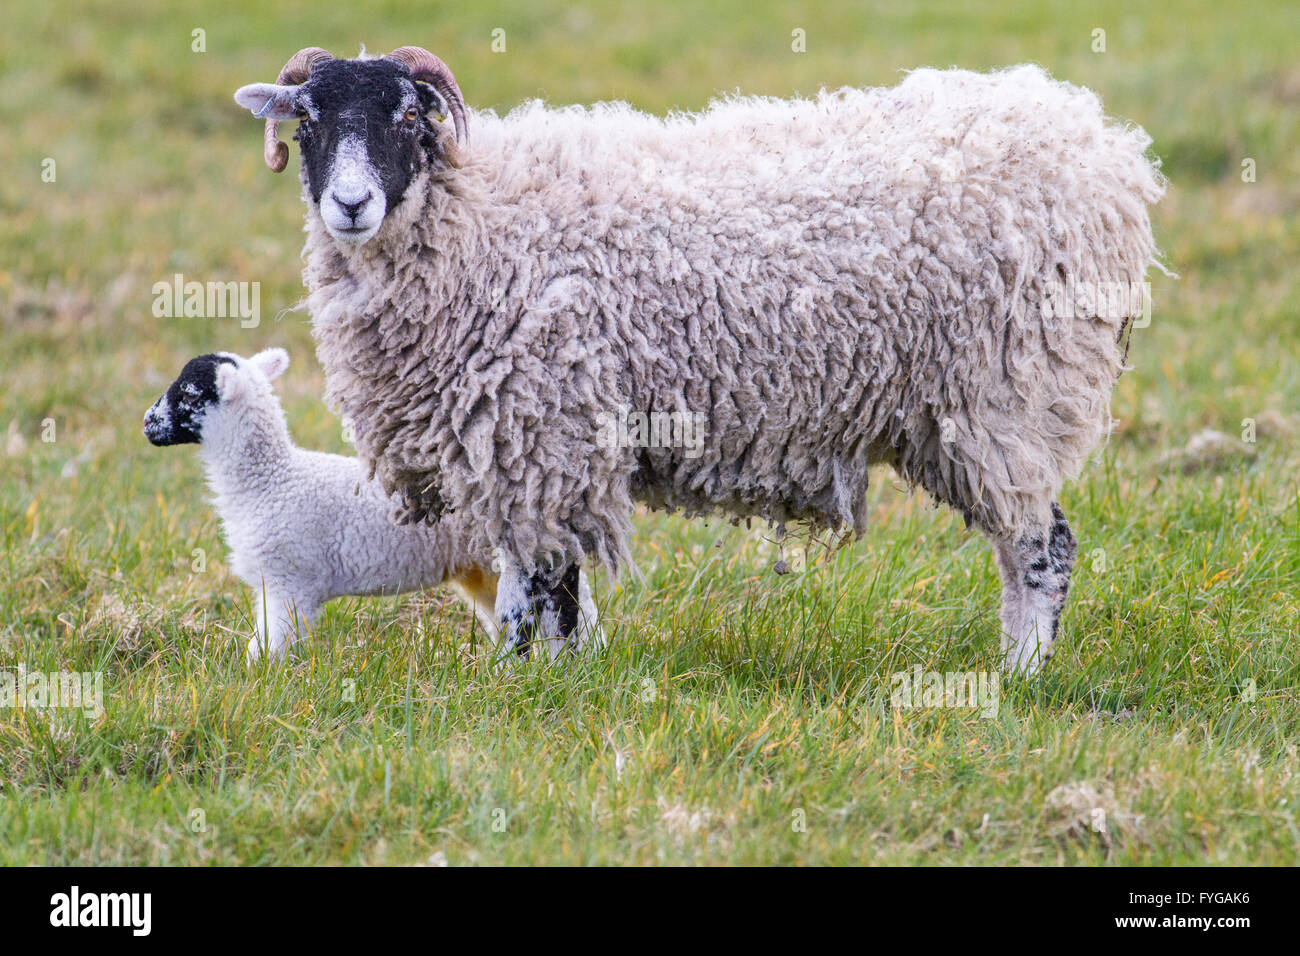 Mother ewe Swaledale sheep with lamb in a field. Female swaledale sheep have horns. - Stock Image